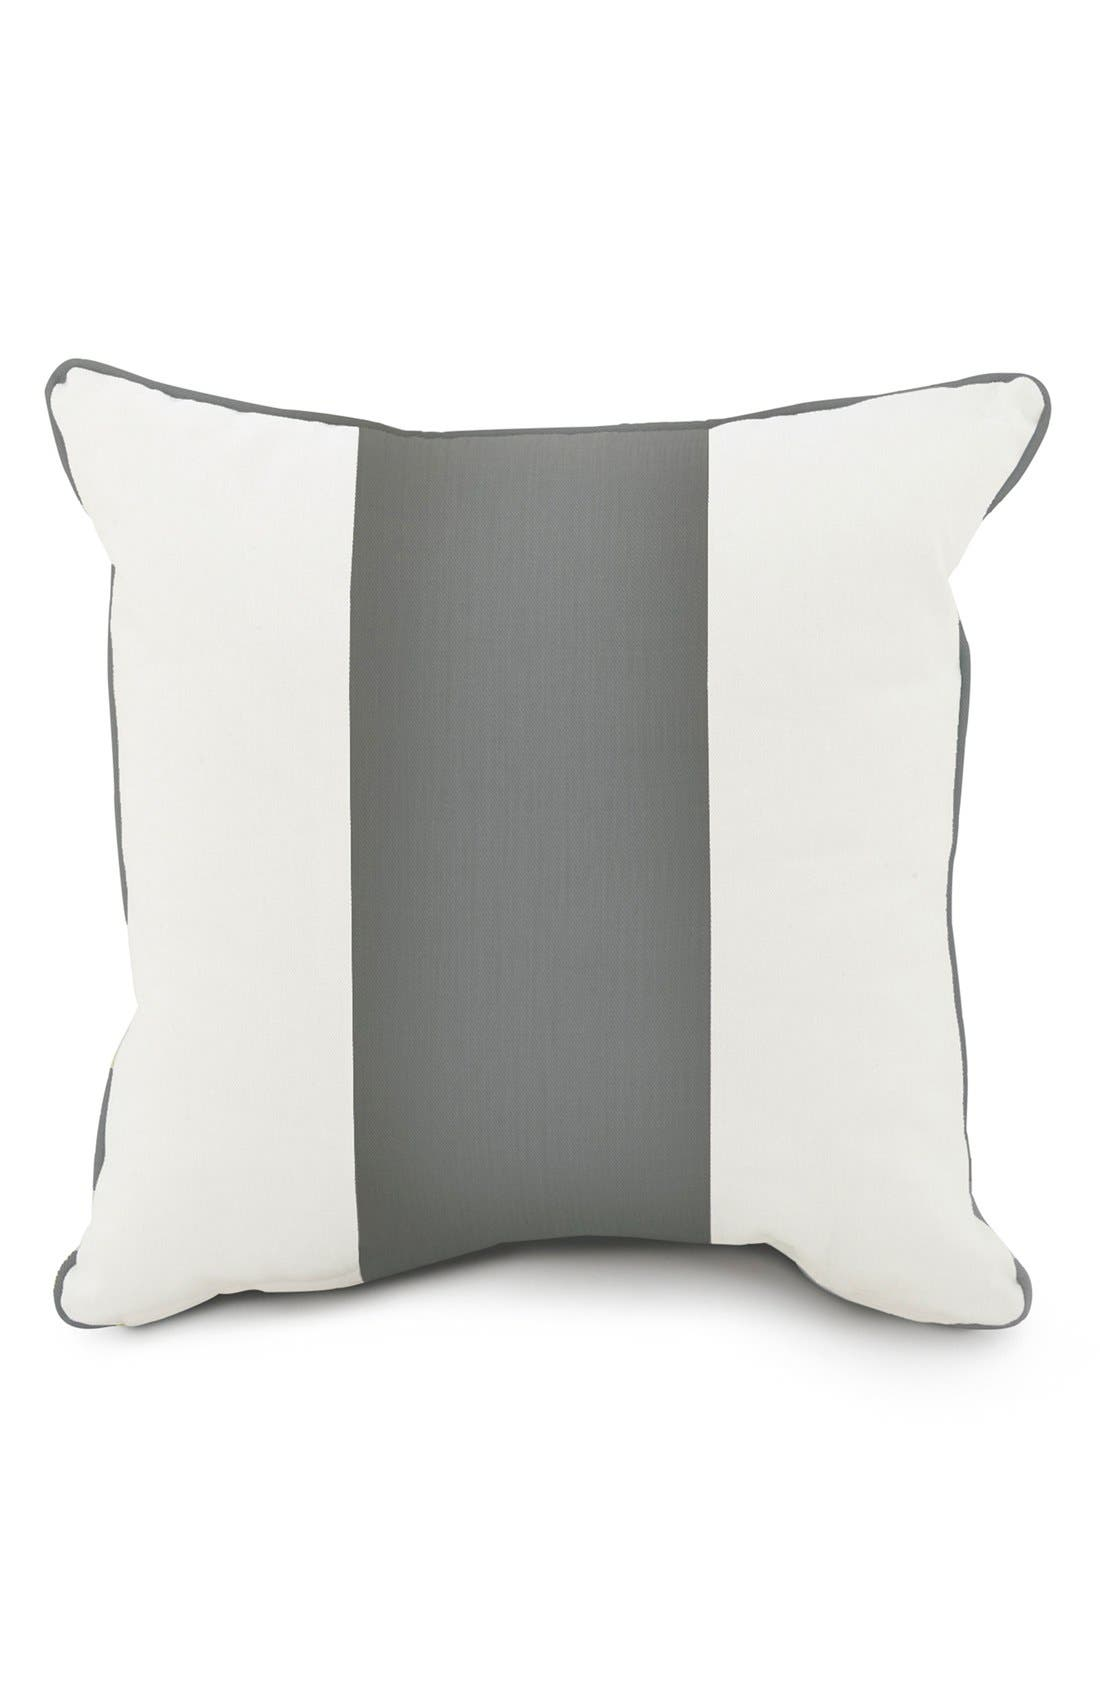 'Band' Square Pillow,                         Main,                         color, 021